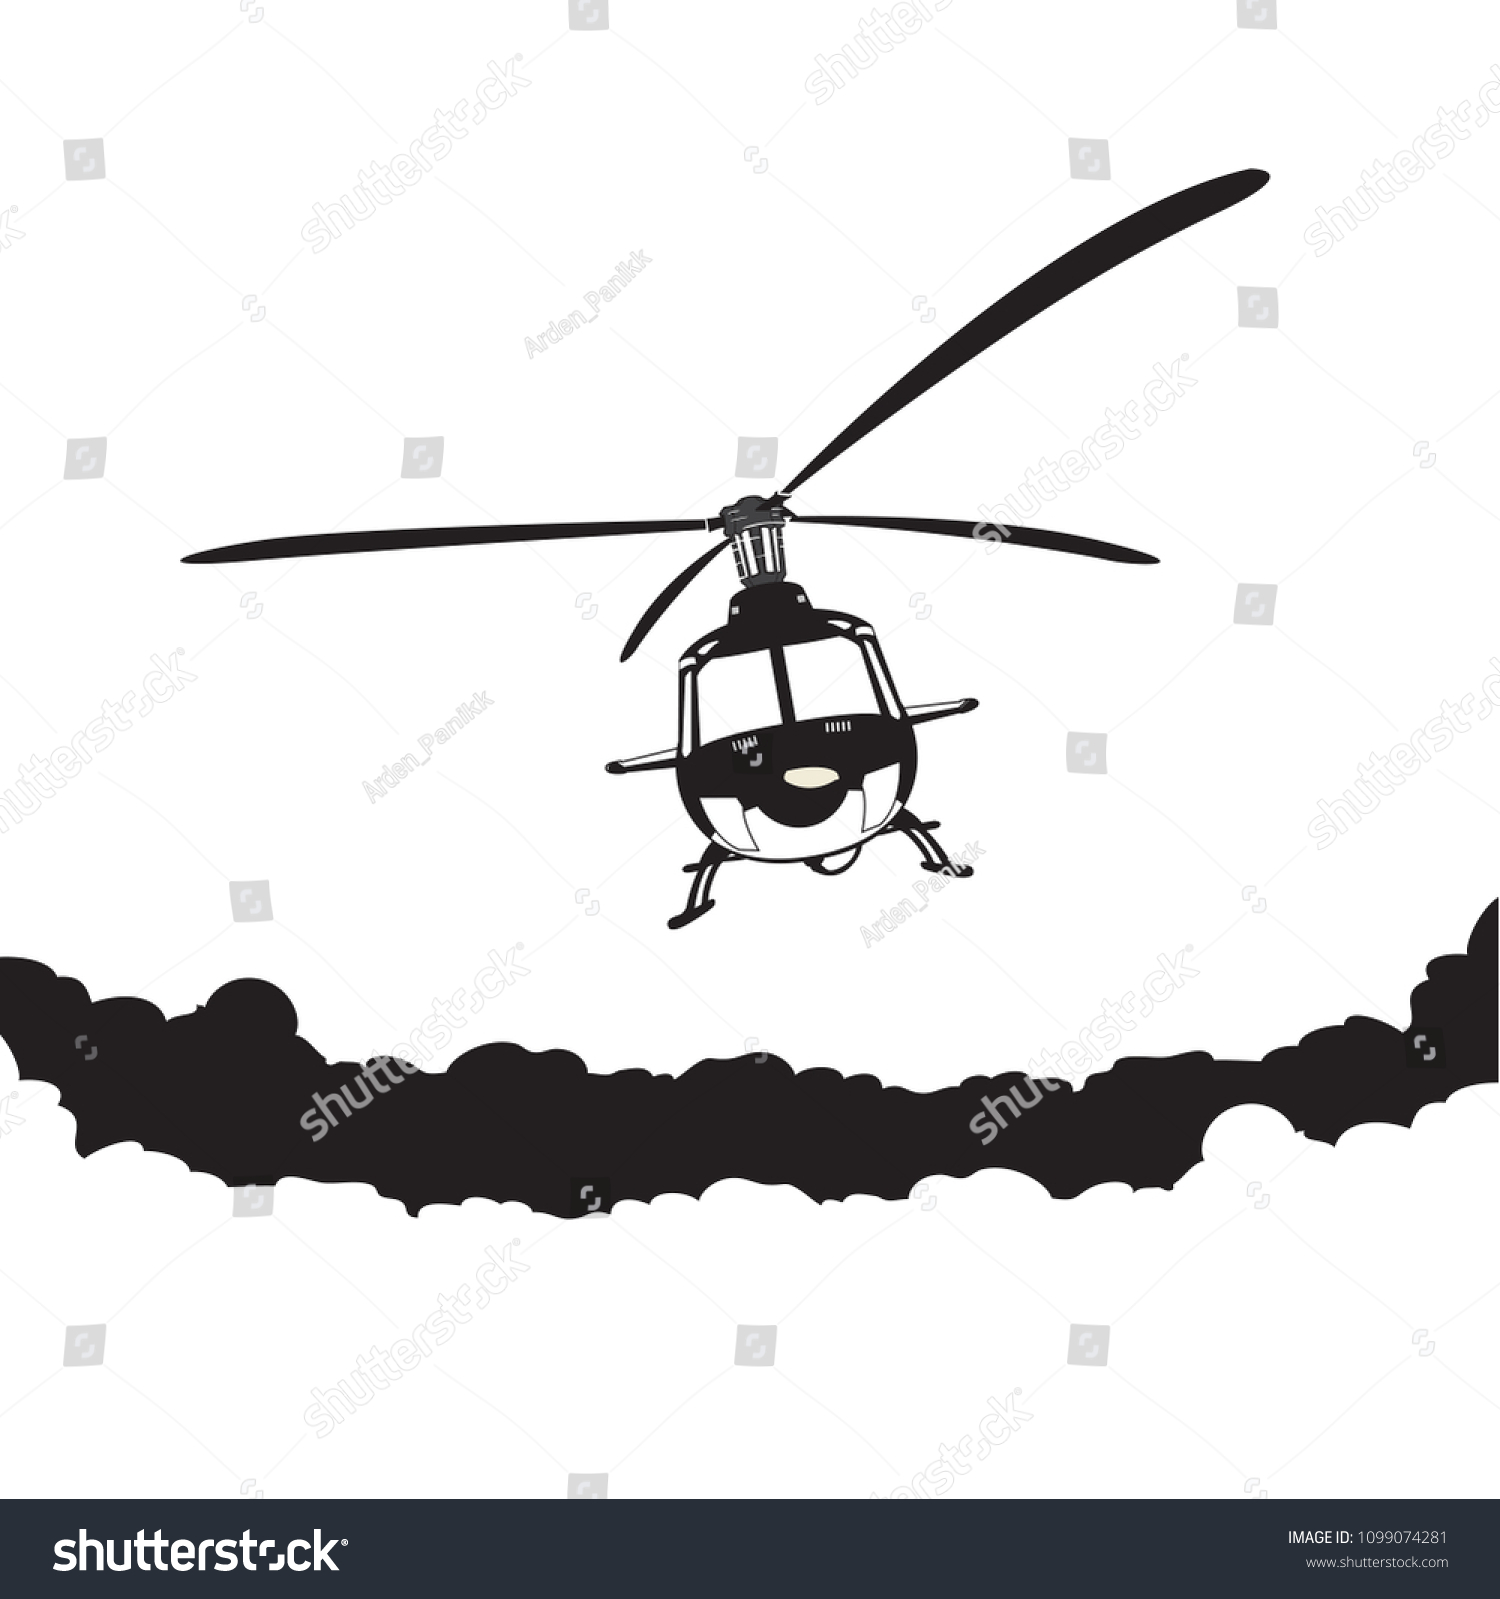 Helicopter Flying Sky Vector Cartoon Stock Vector Royalty Free 1099074281